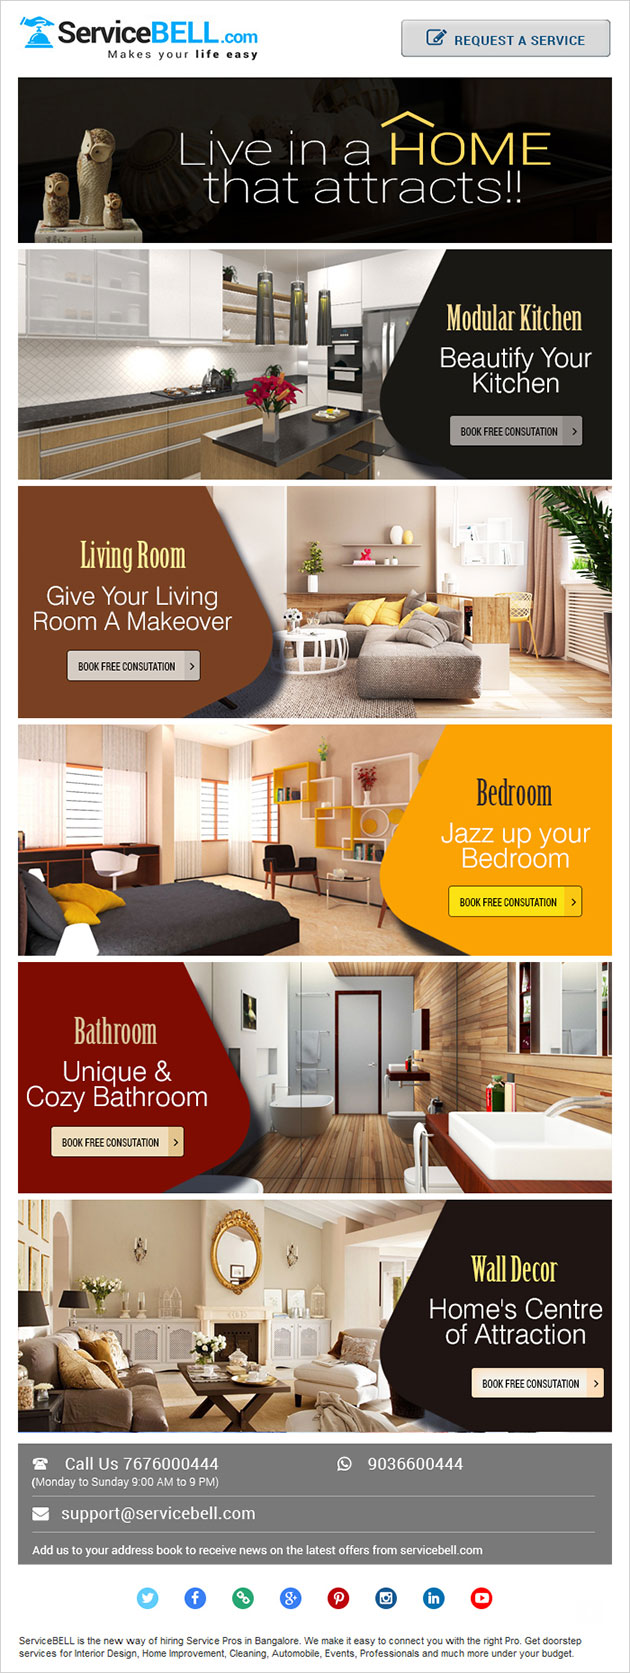 InteriorDesign_mailer_march11